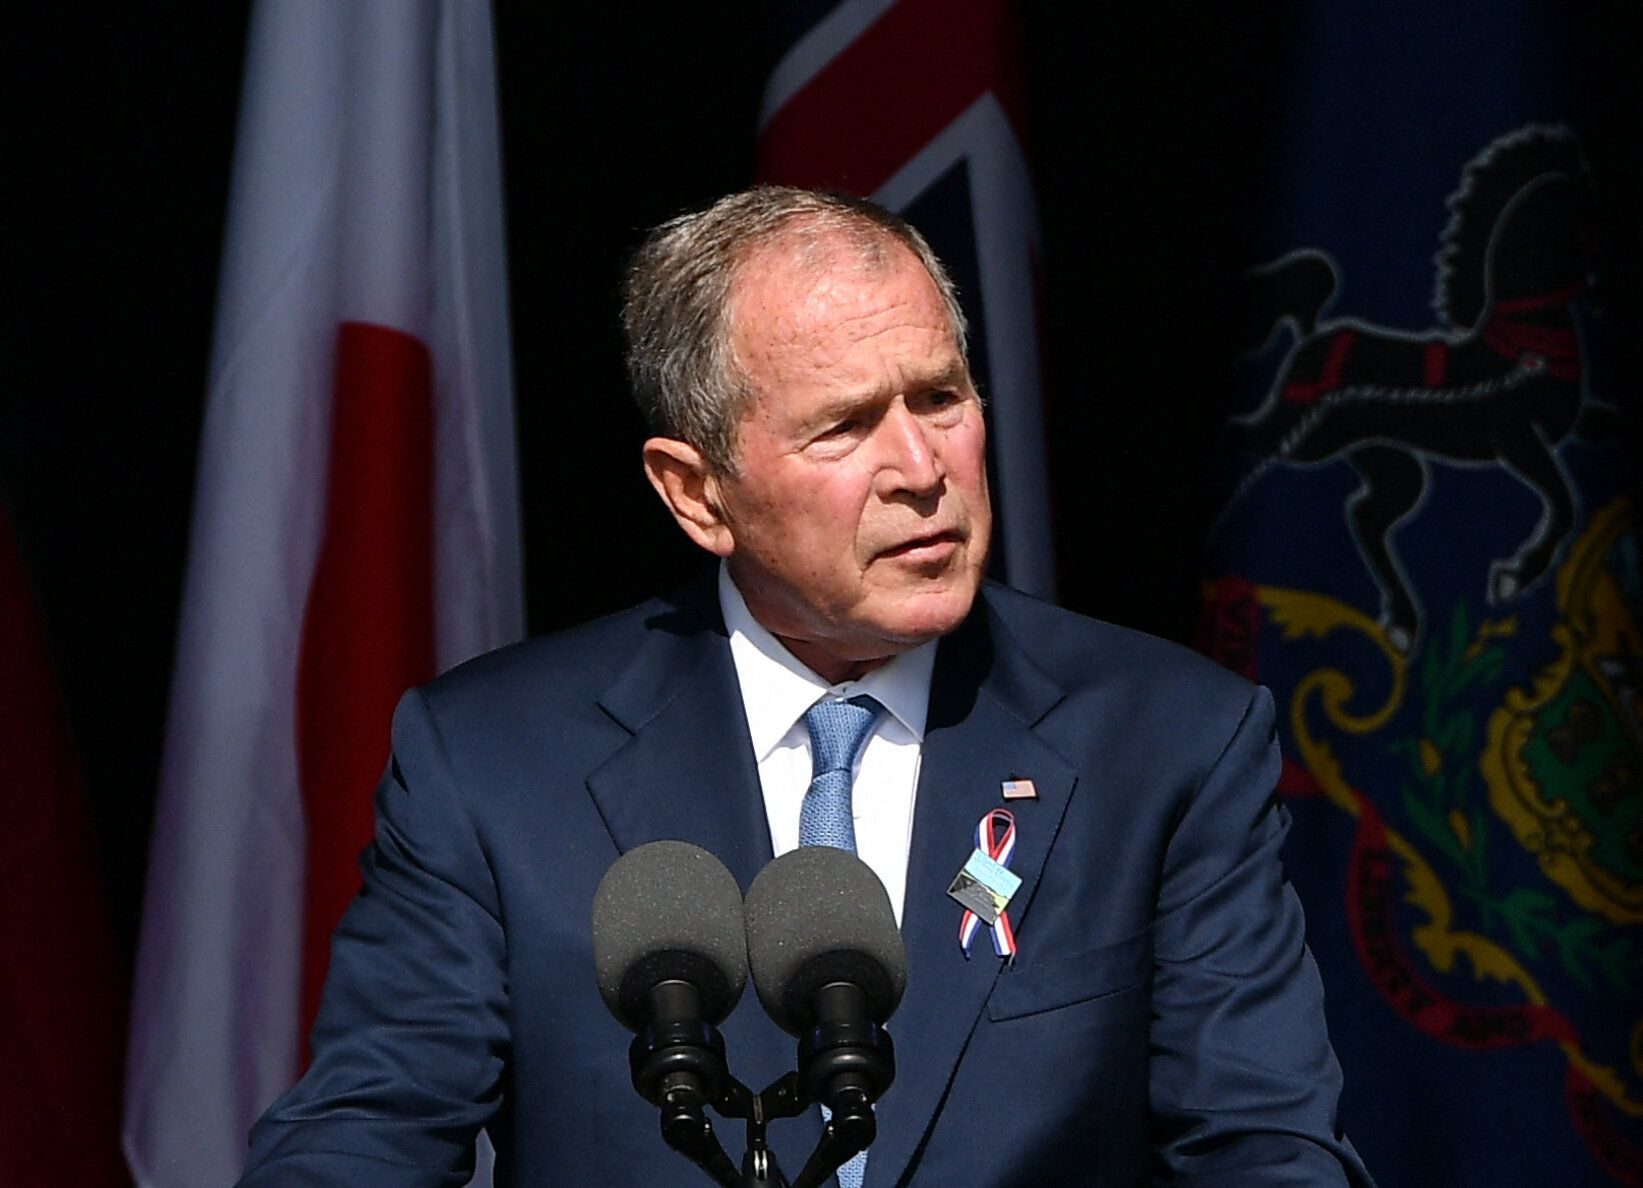 Former President George W. Bush speaks during a 9/11 commemoration at the Flight 93 National Memorial in Shanksville, Pennsyl